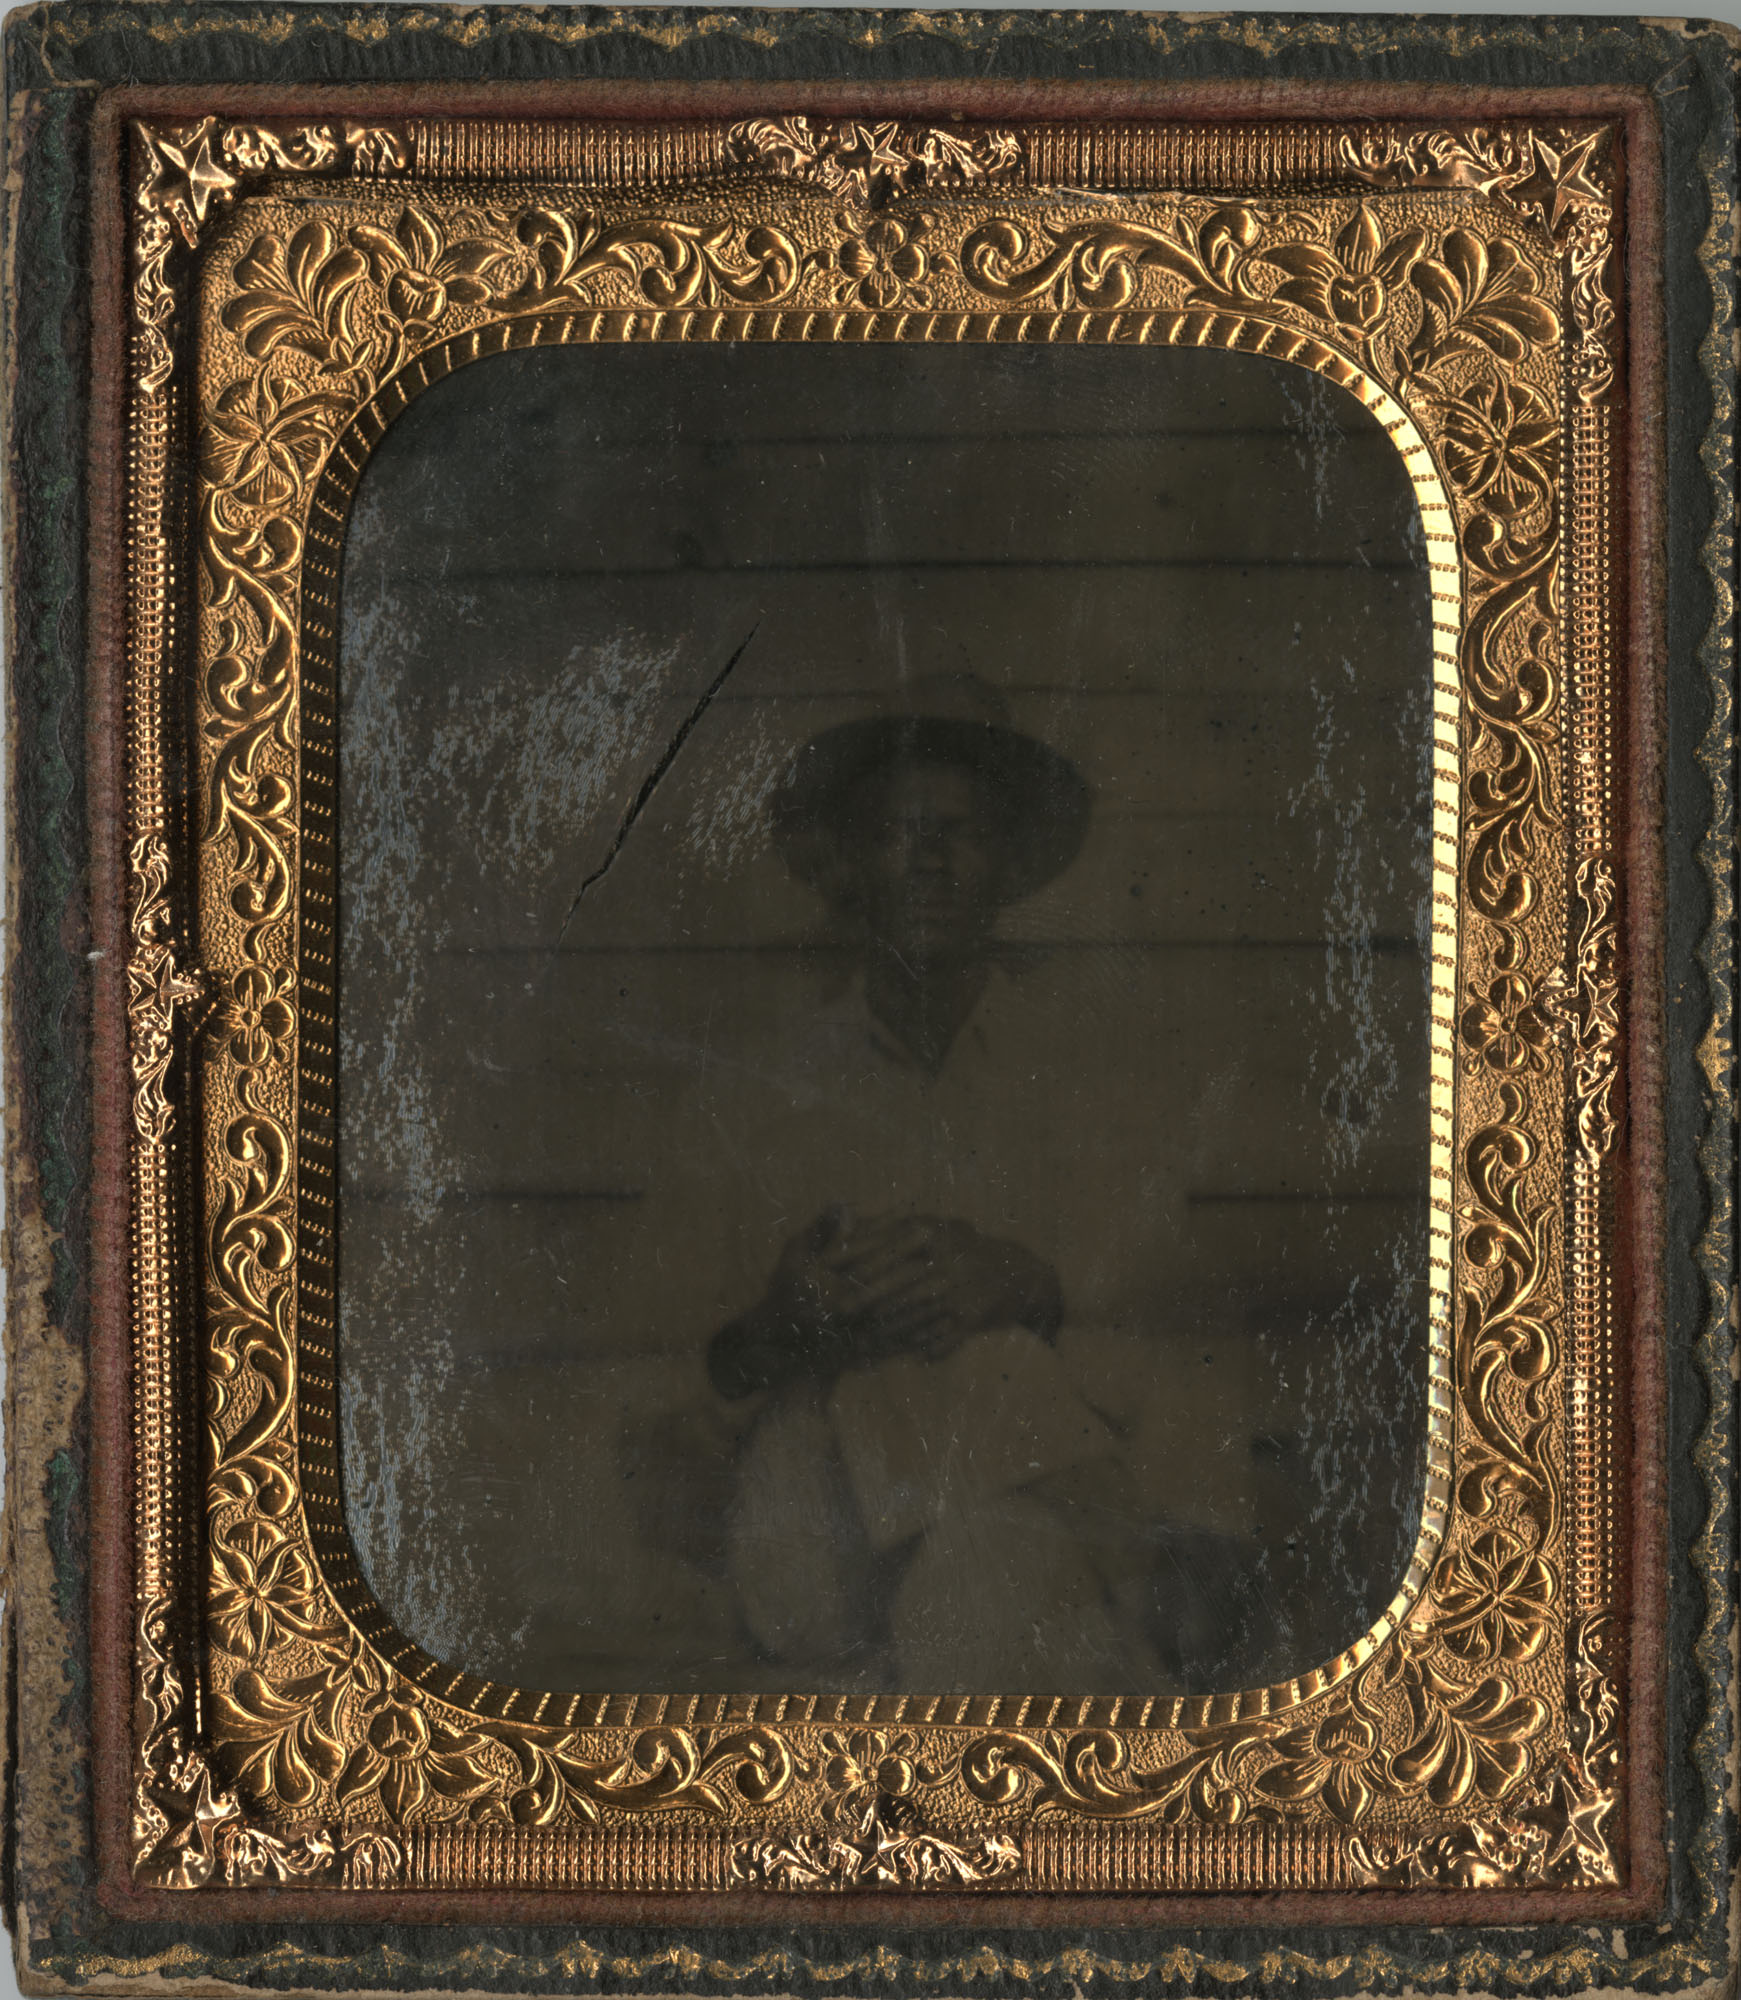 Cased Tintype of an African American Man